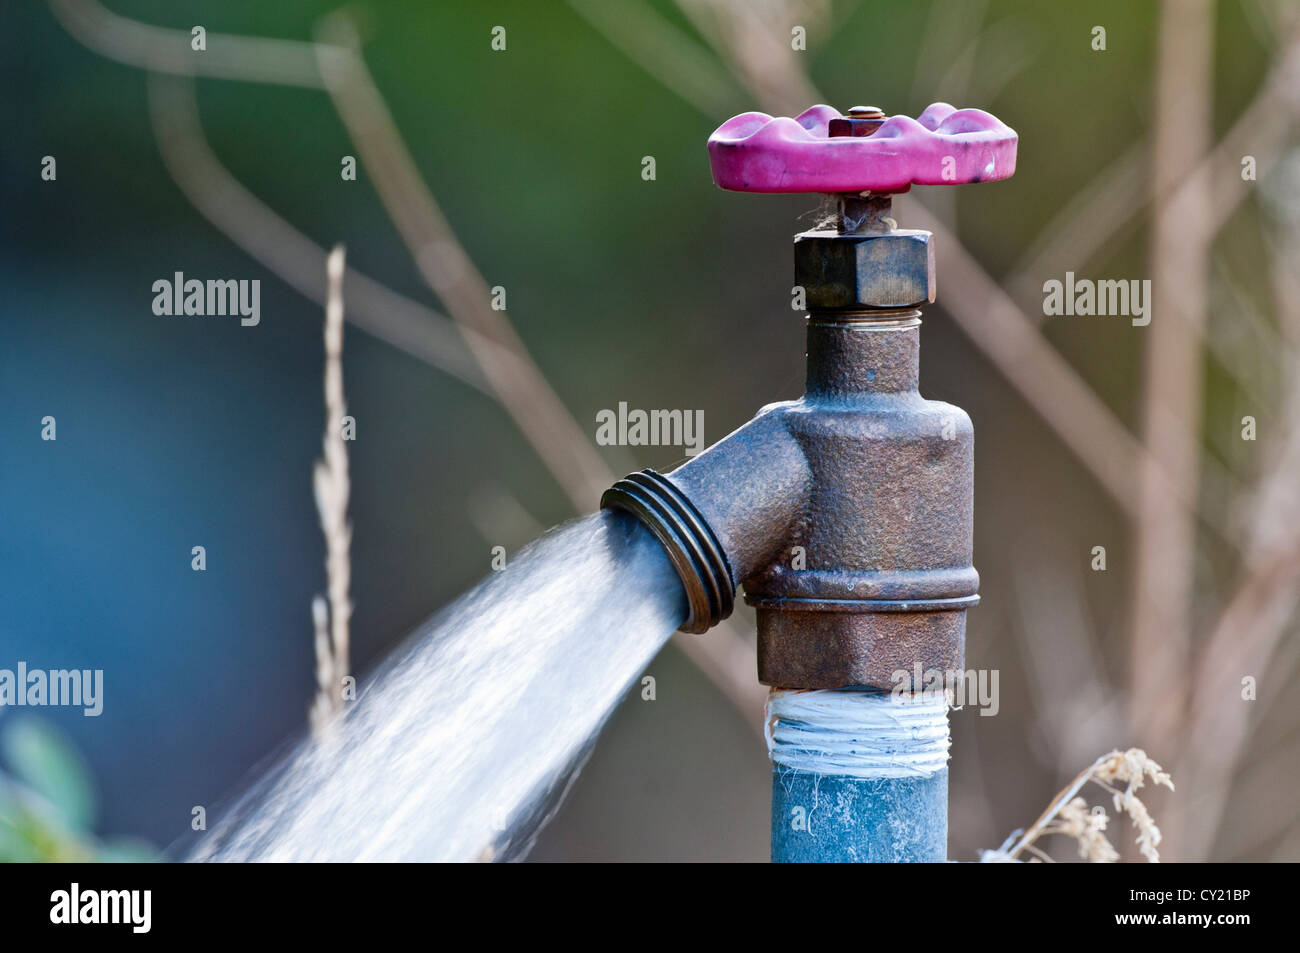 Water flowing from spigot - Stock Image